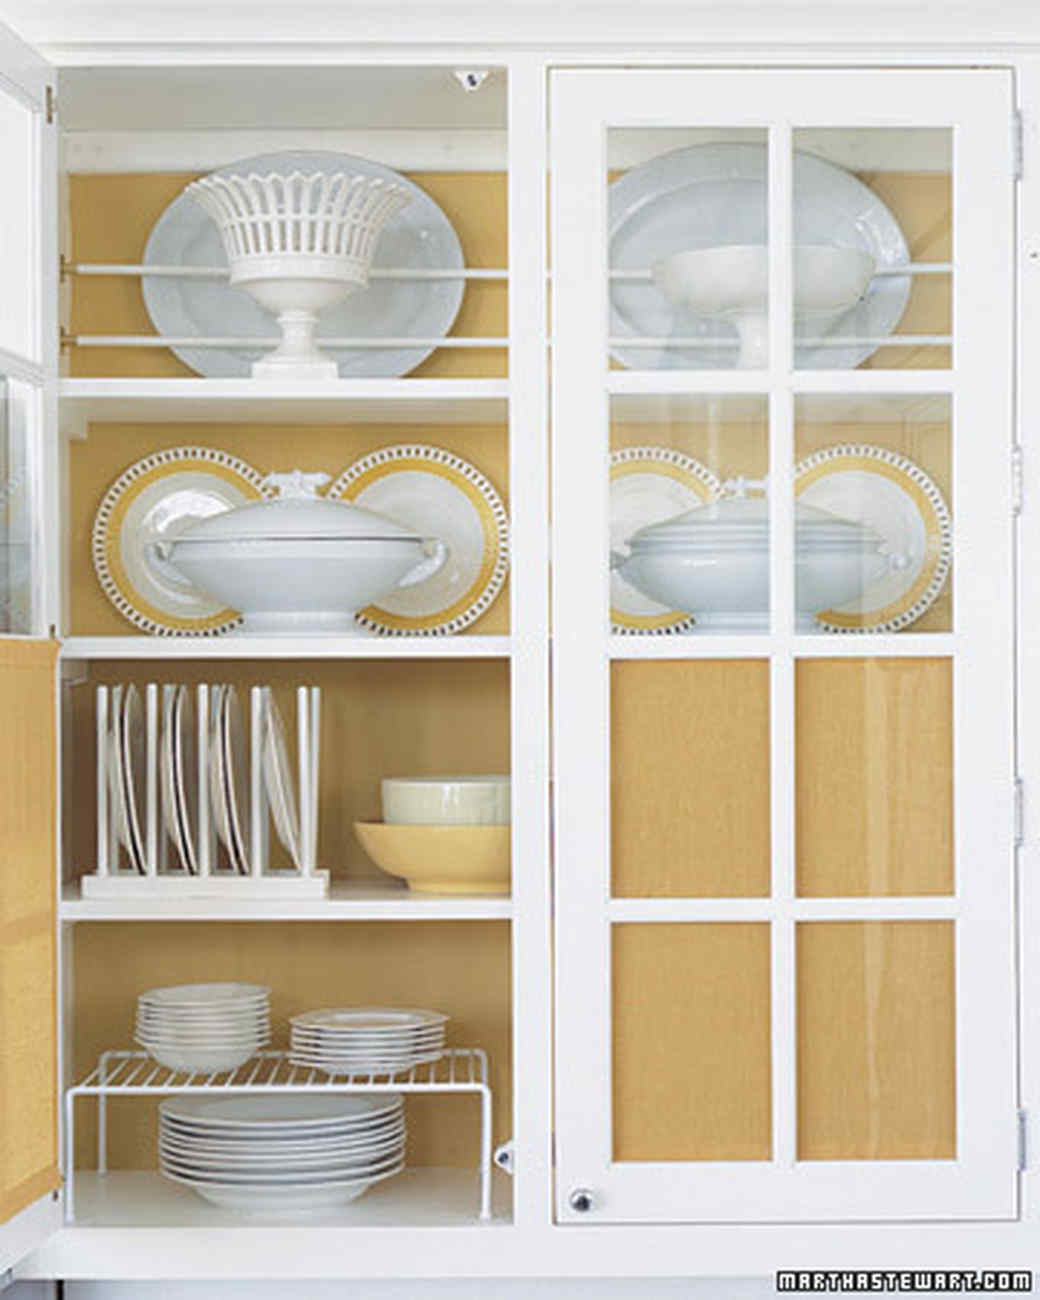 how to add a pantry your kitchen kmart chairs small storage ideas for more efficient space martha stewart